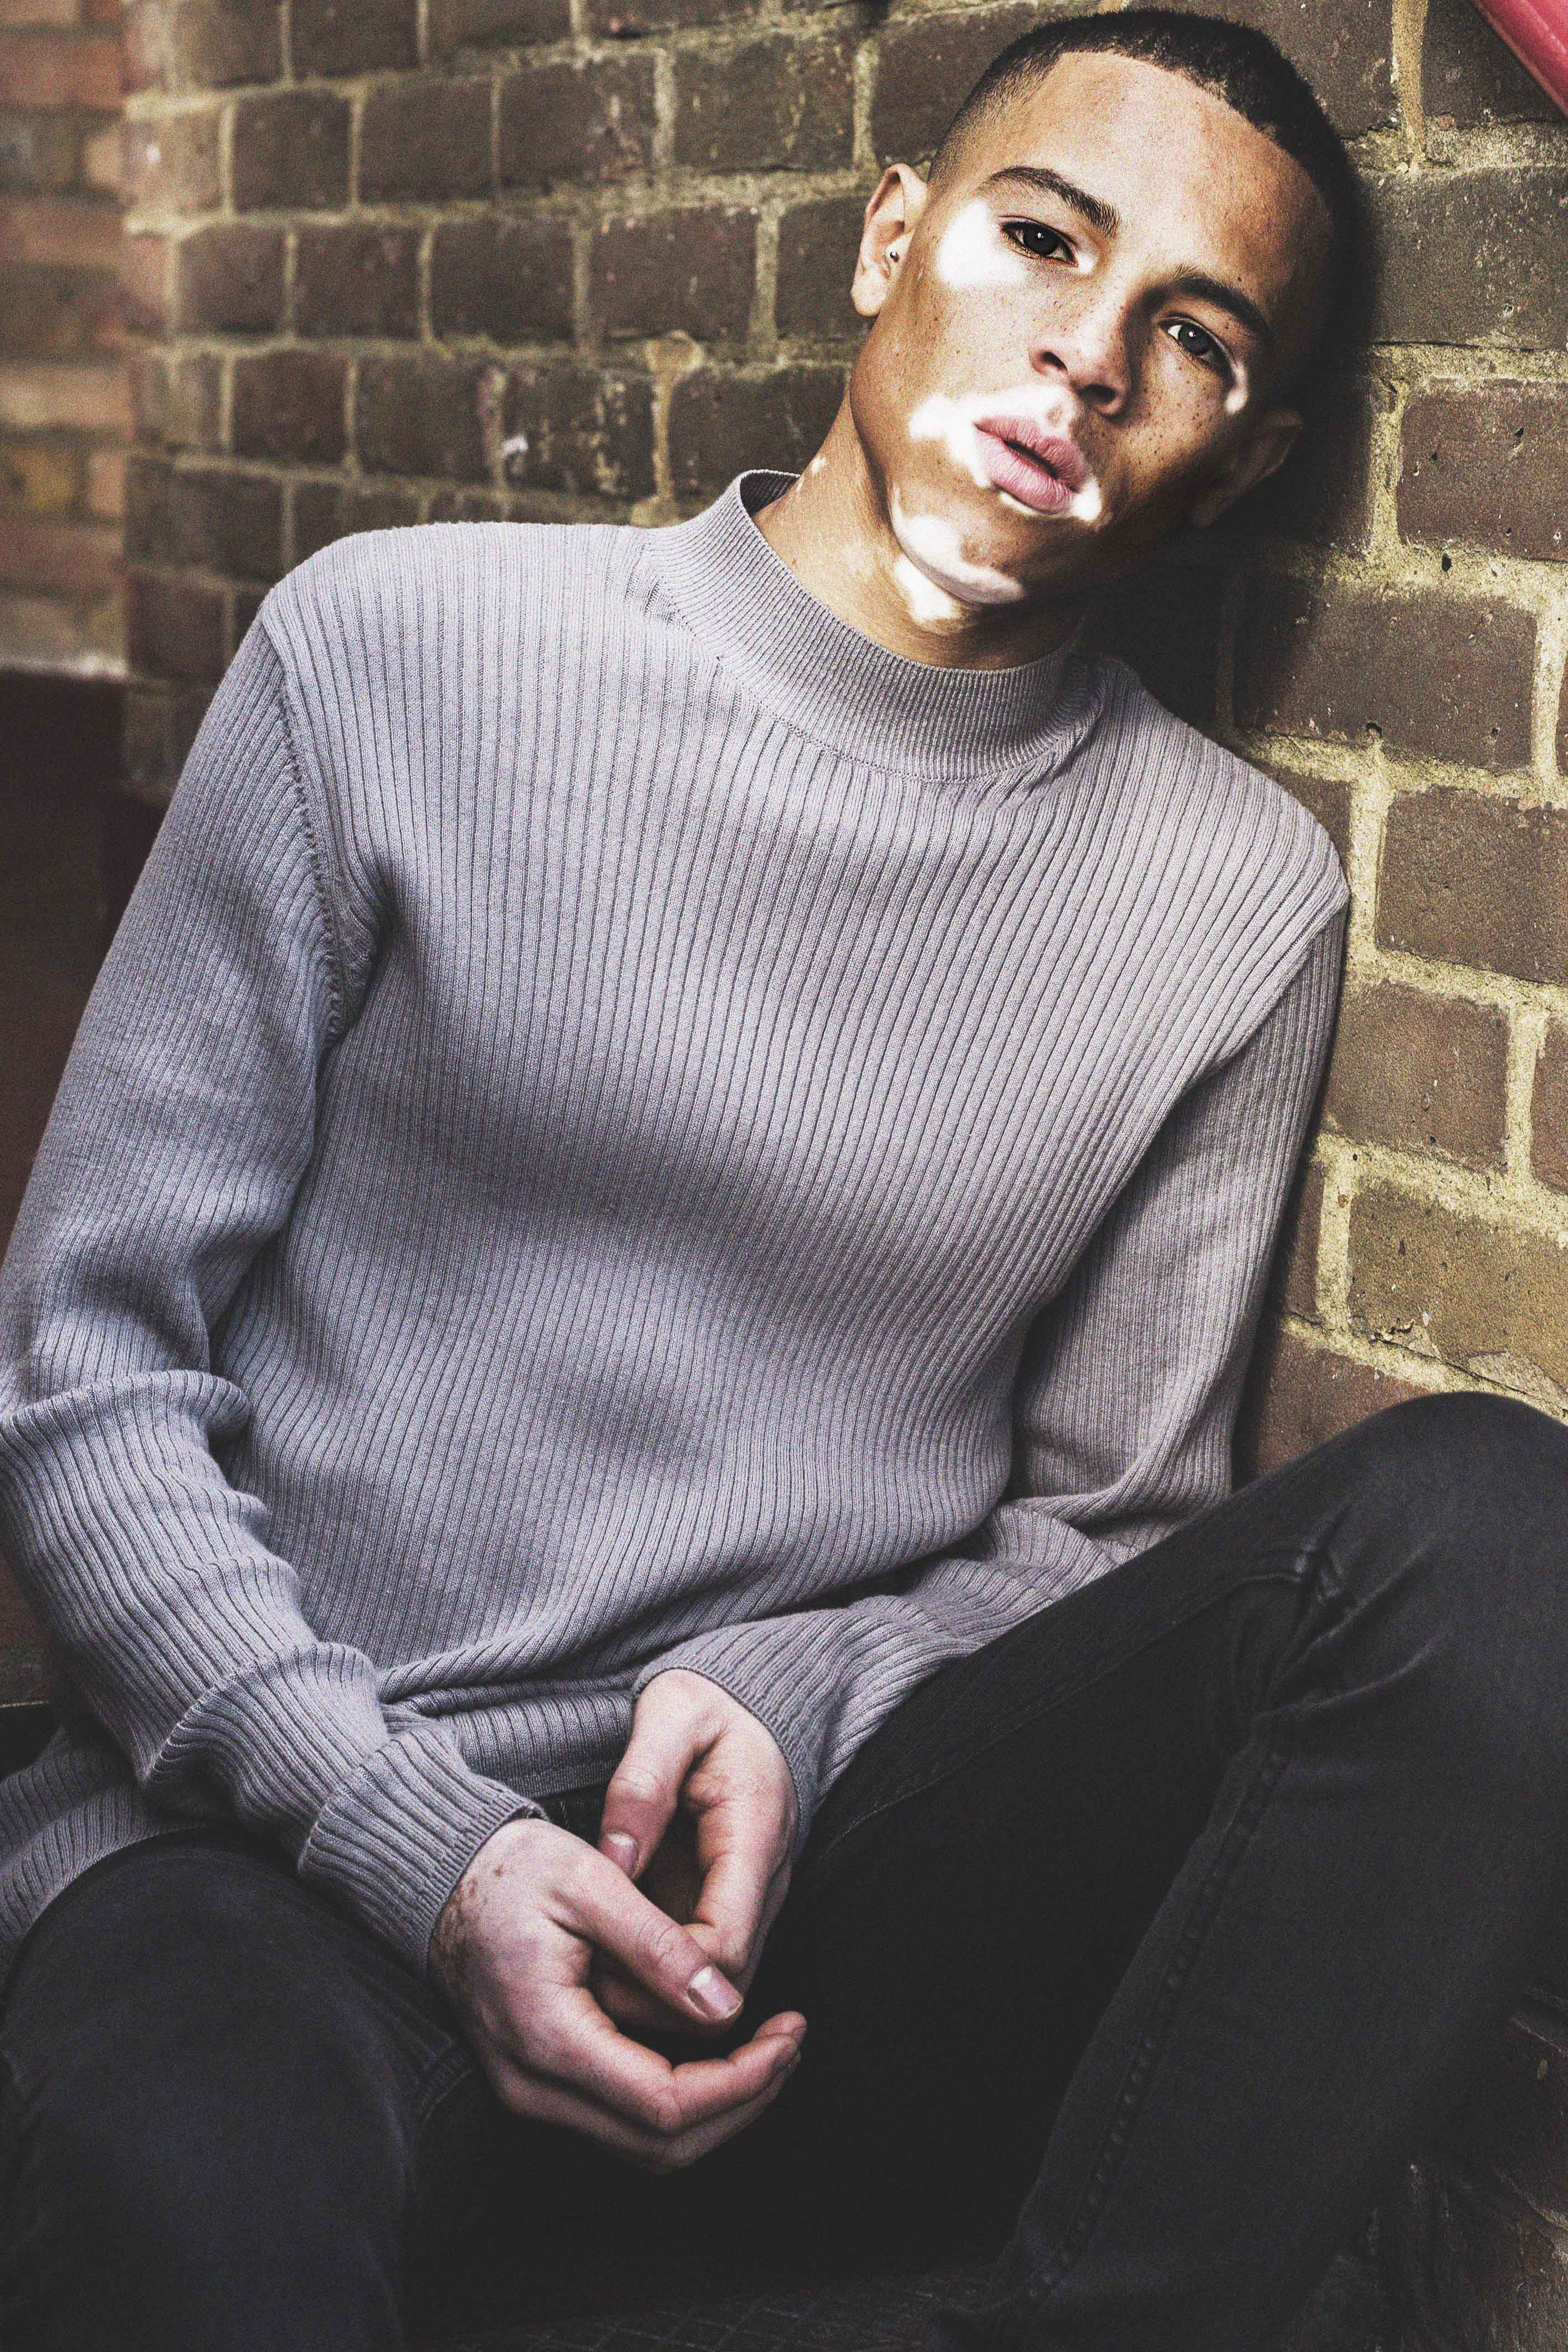 Young Man With Same Skin Condition As Michael Jackson Becomes A Model Caters News Agency